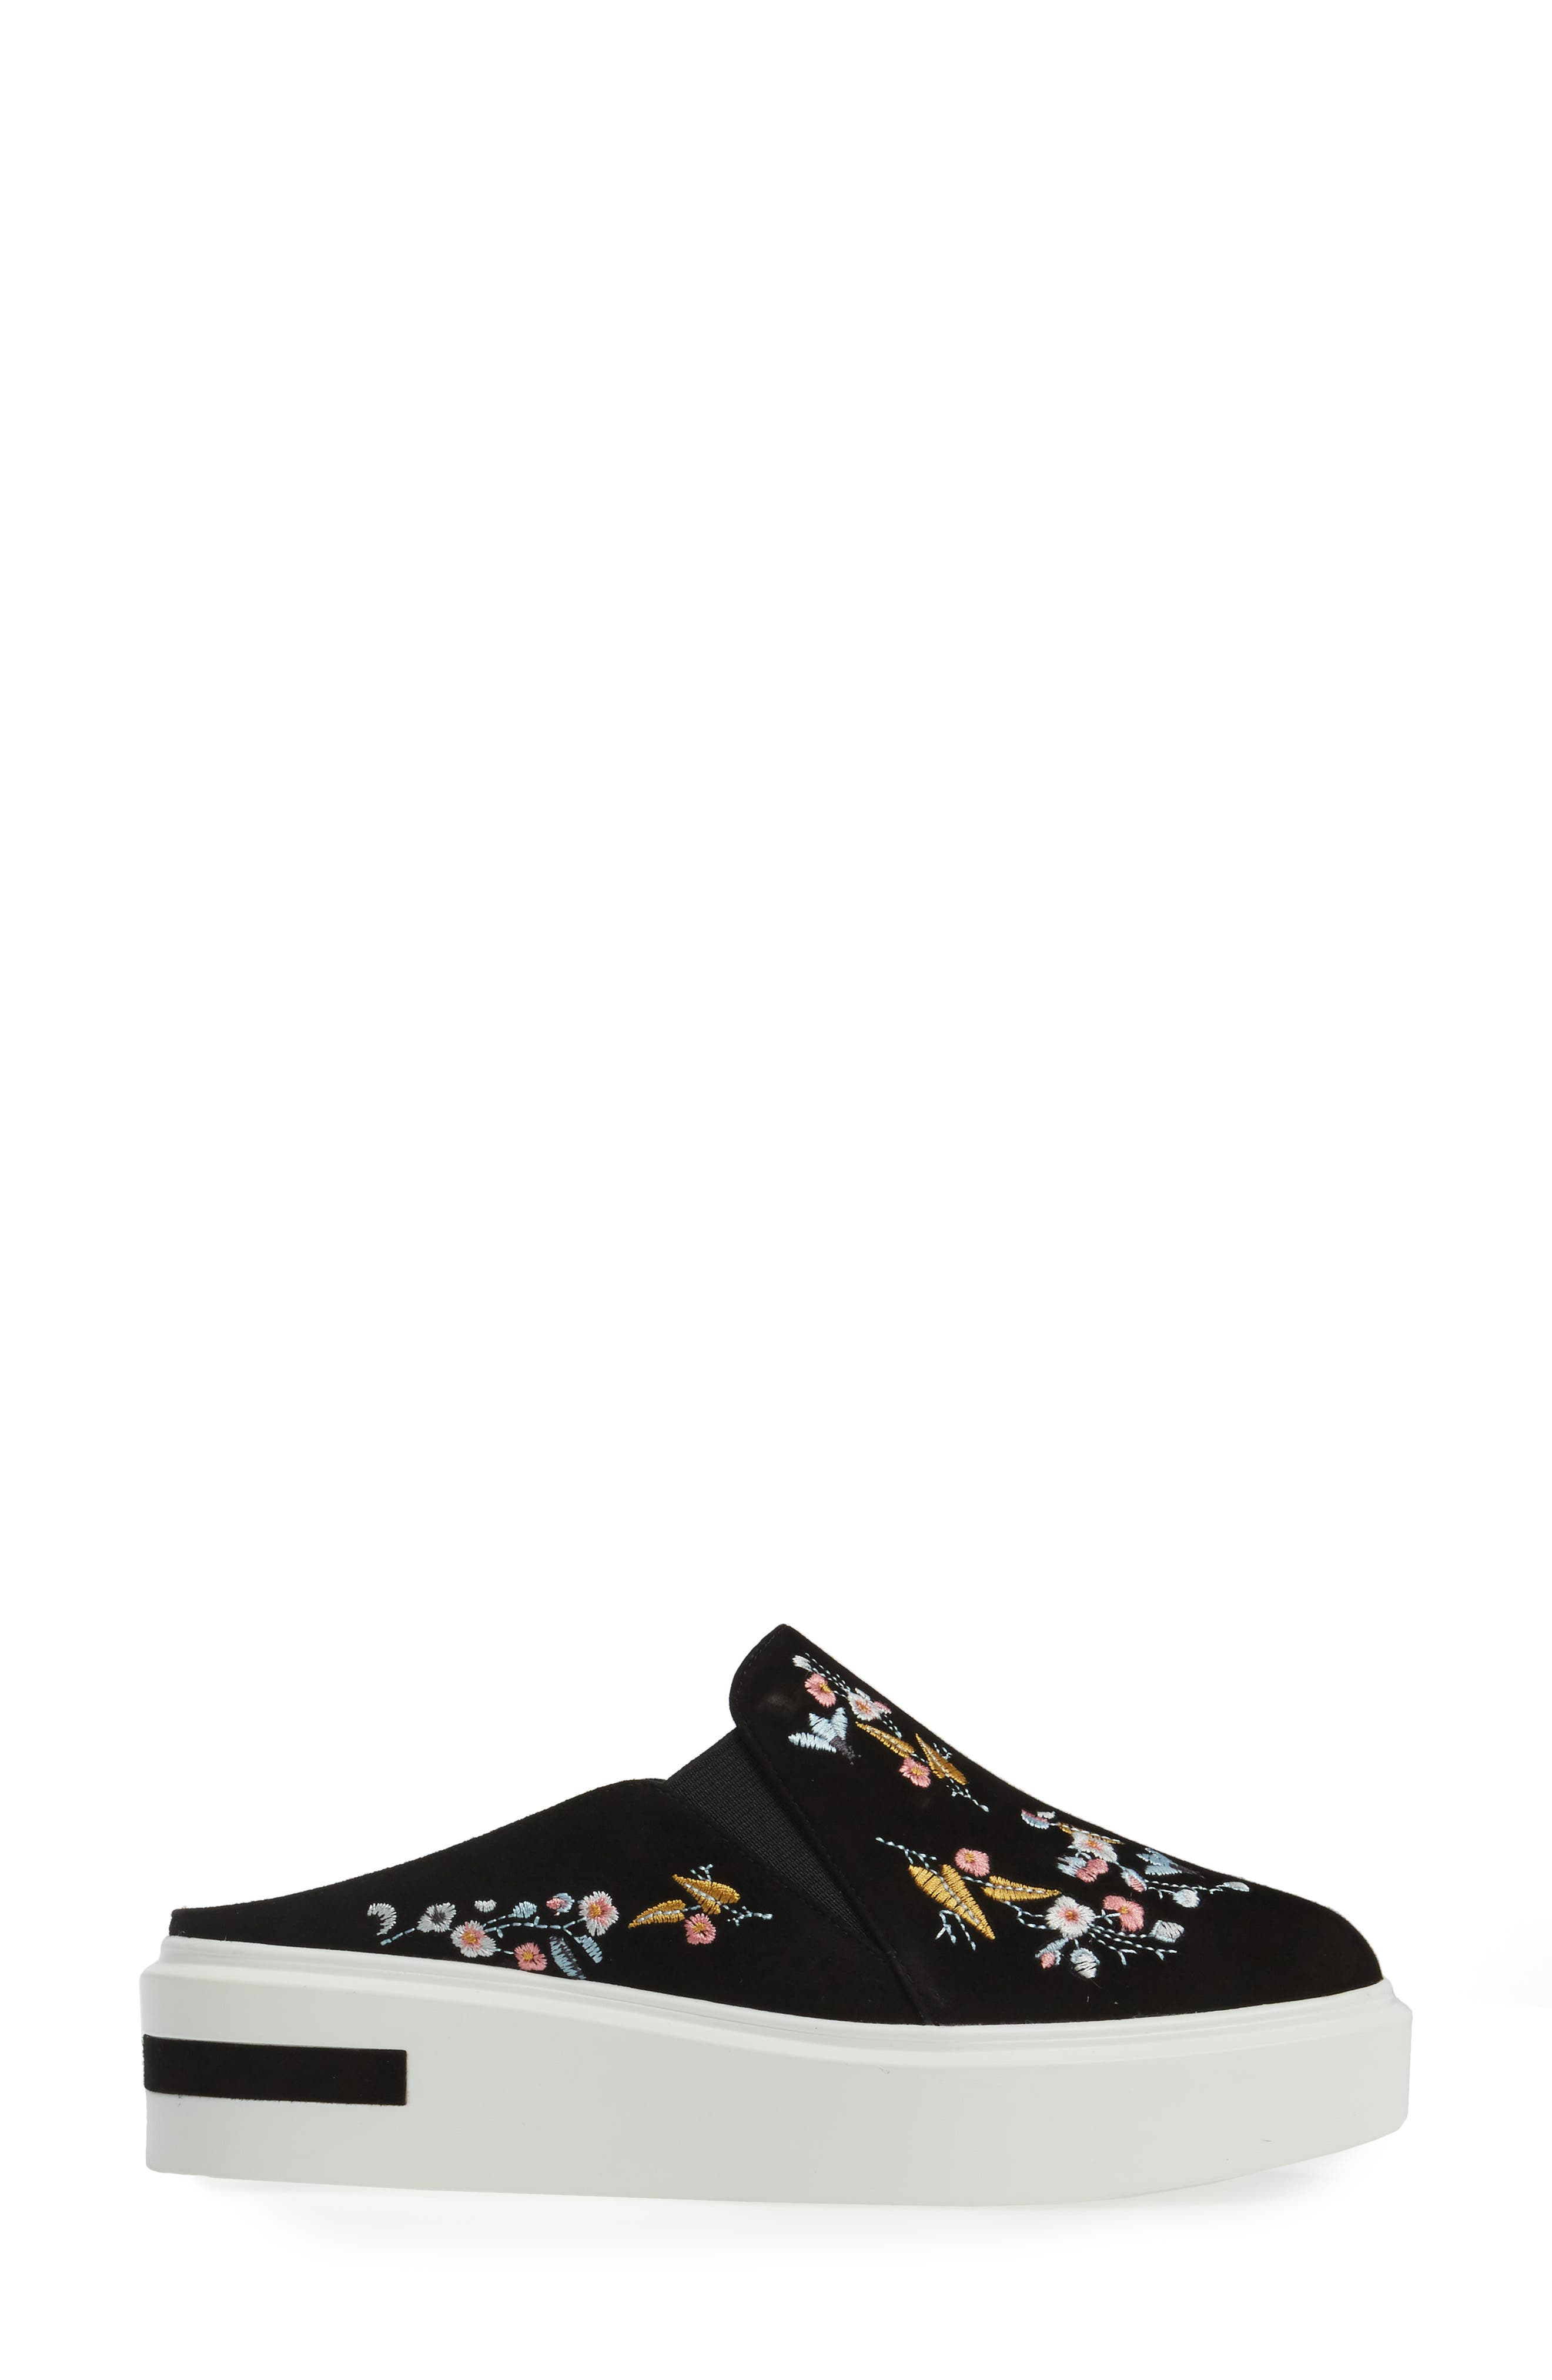 Fab II Embroidered Platform Sneaker,                             Alternate thumbnail 3, color,